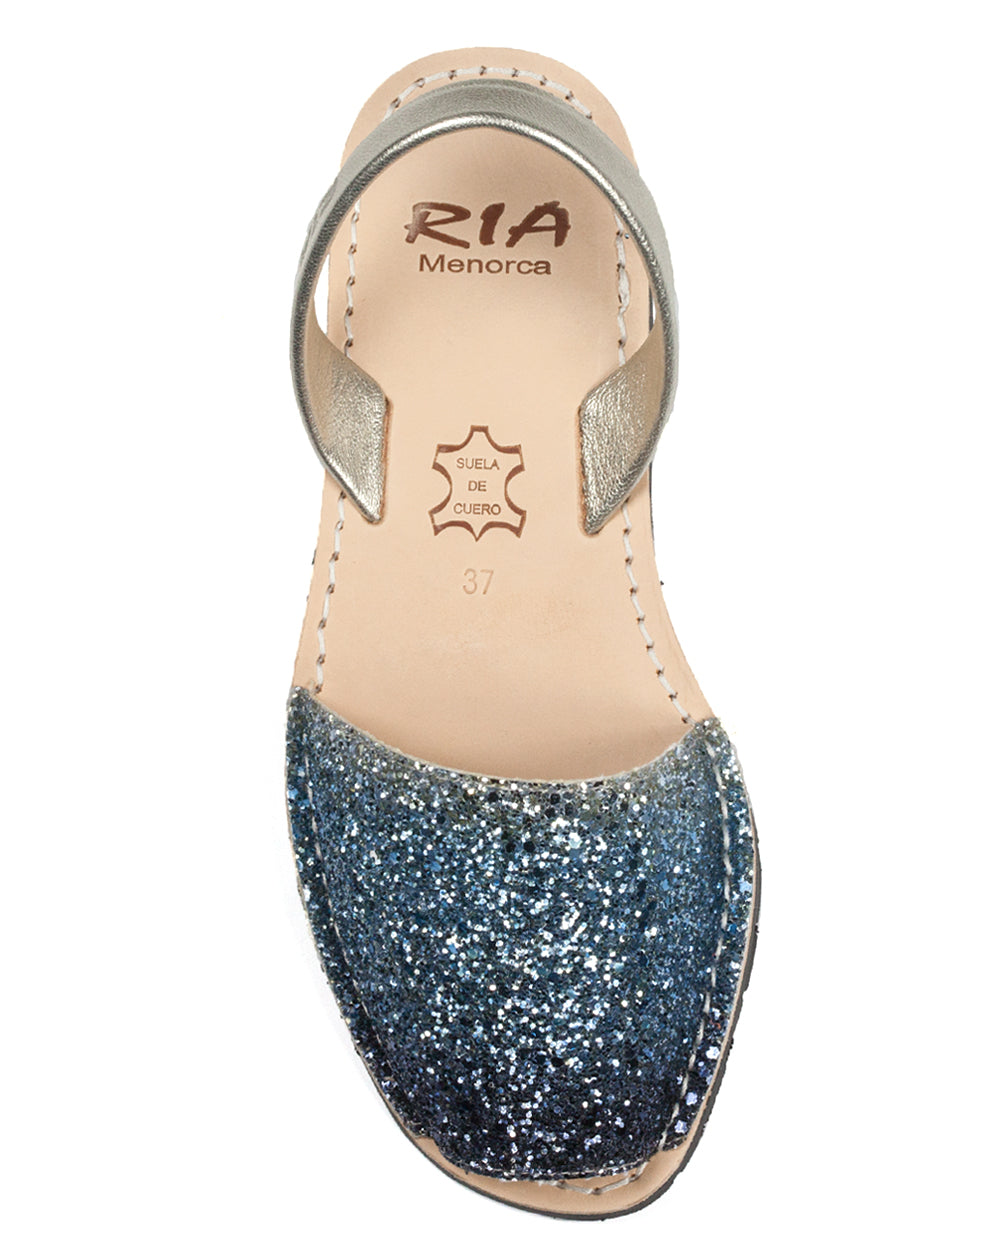 Ria Menorcan Sandals In Blue Illusion Glitter The